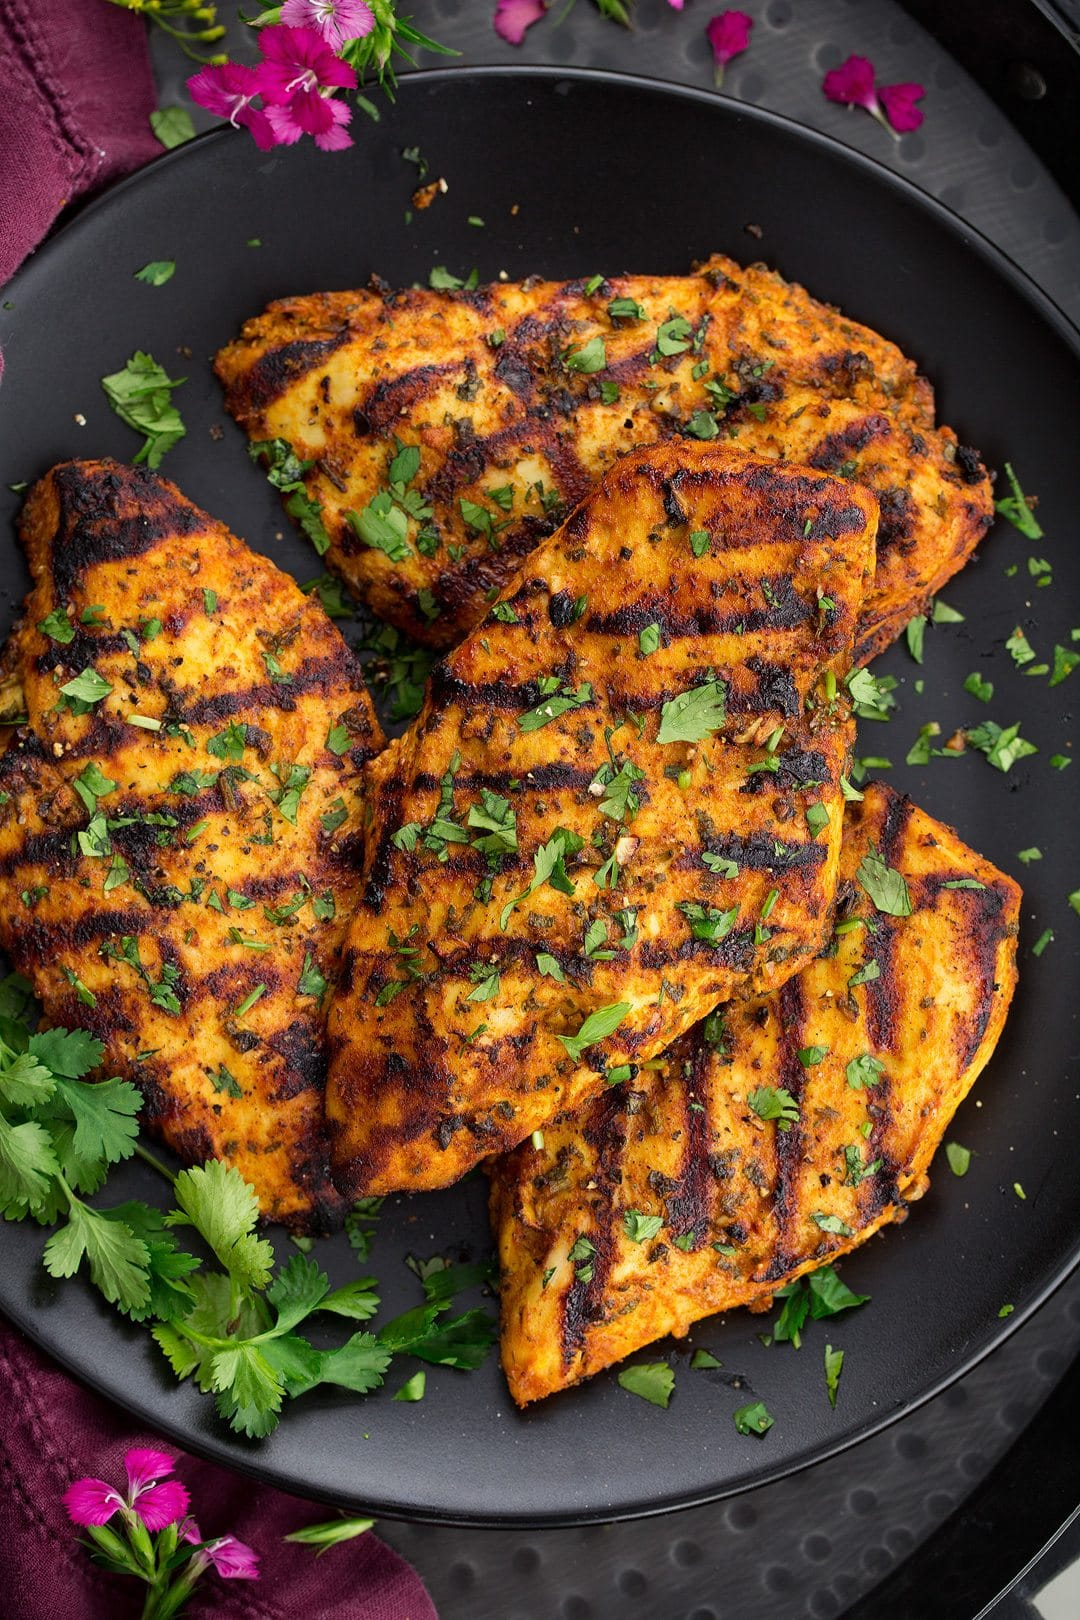 Grilled Moroccan Chicken on a dark plate with fresh parsley